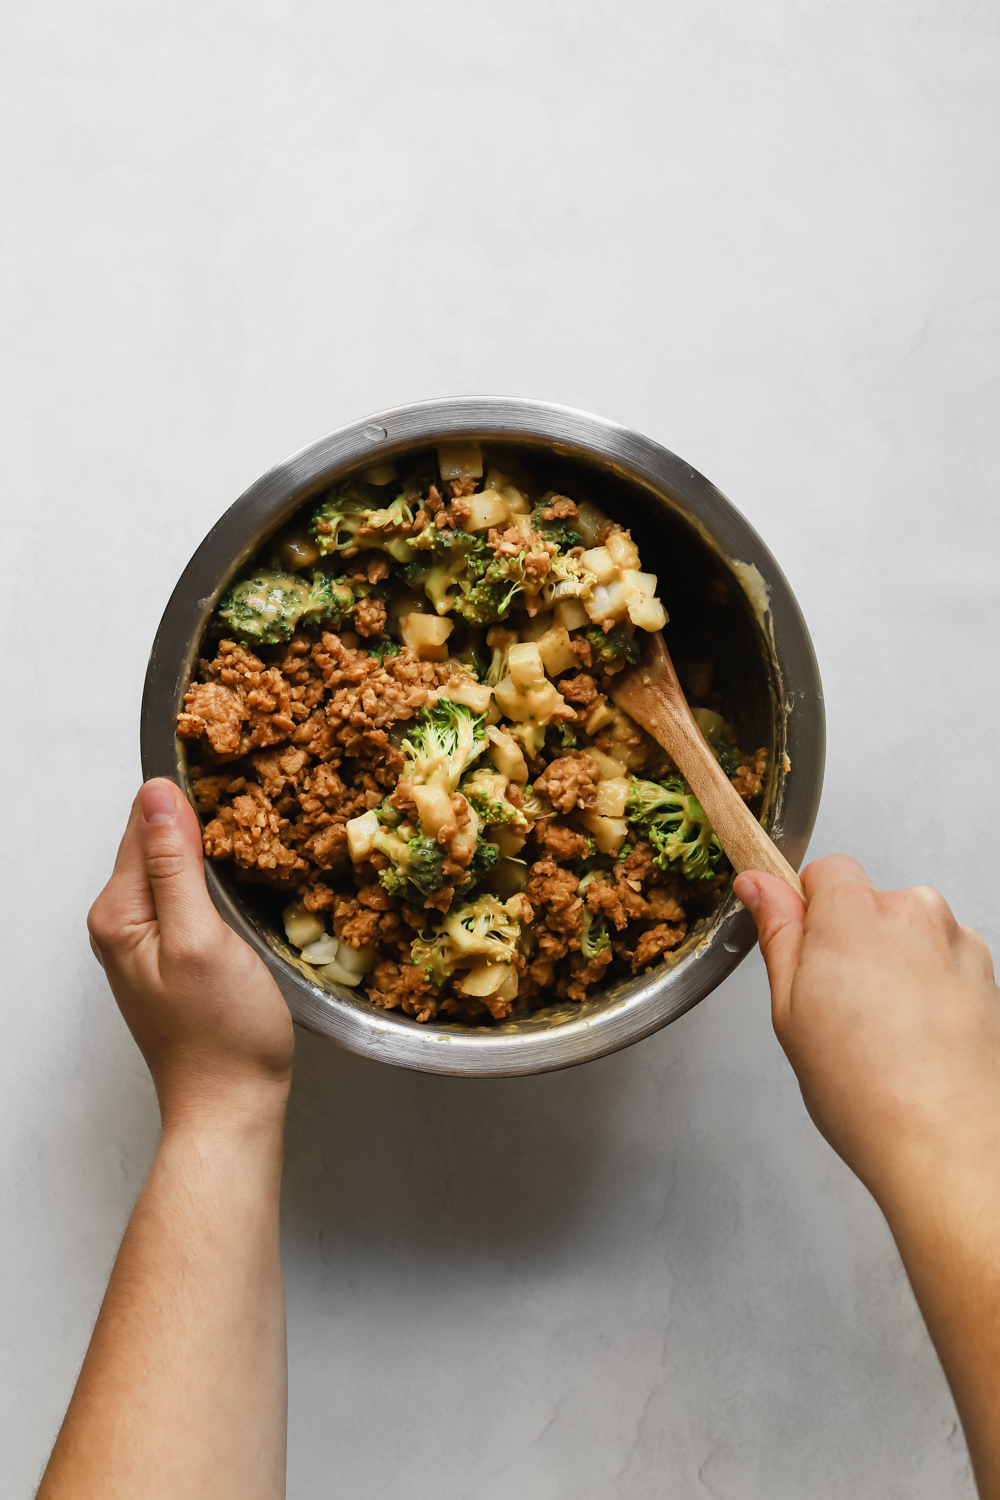 Mixing together diced potatoes, broccoli, tempeh sausage crumbles, and vegan potato cheese sauce in a large mixing bowl.